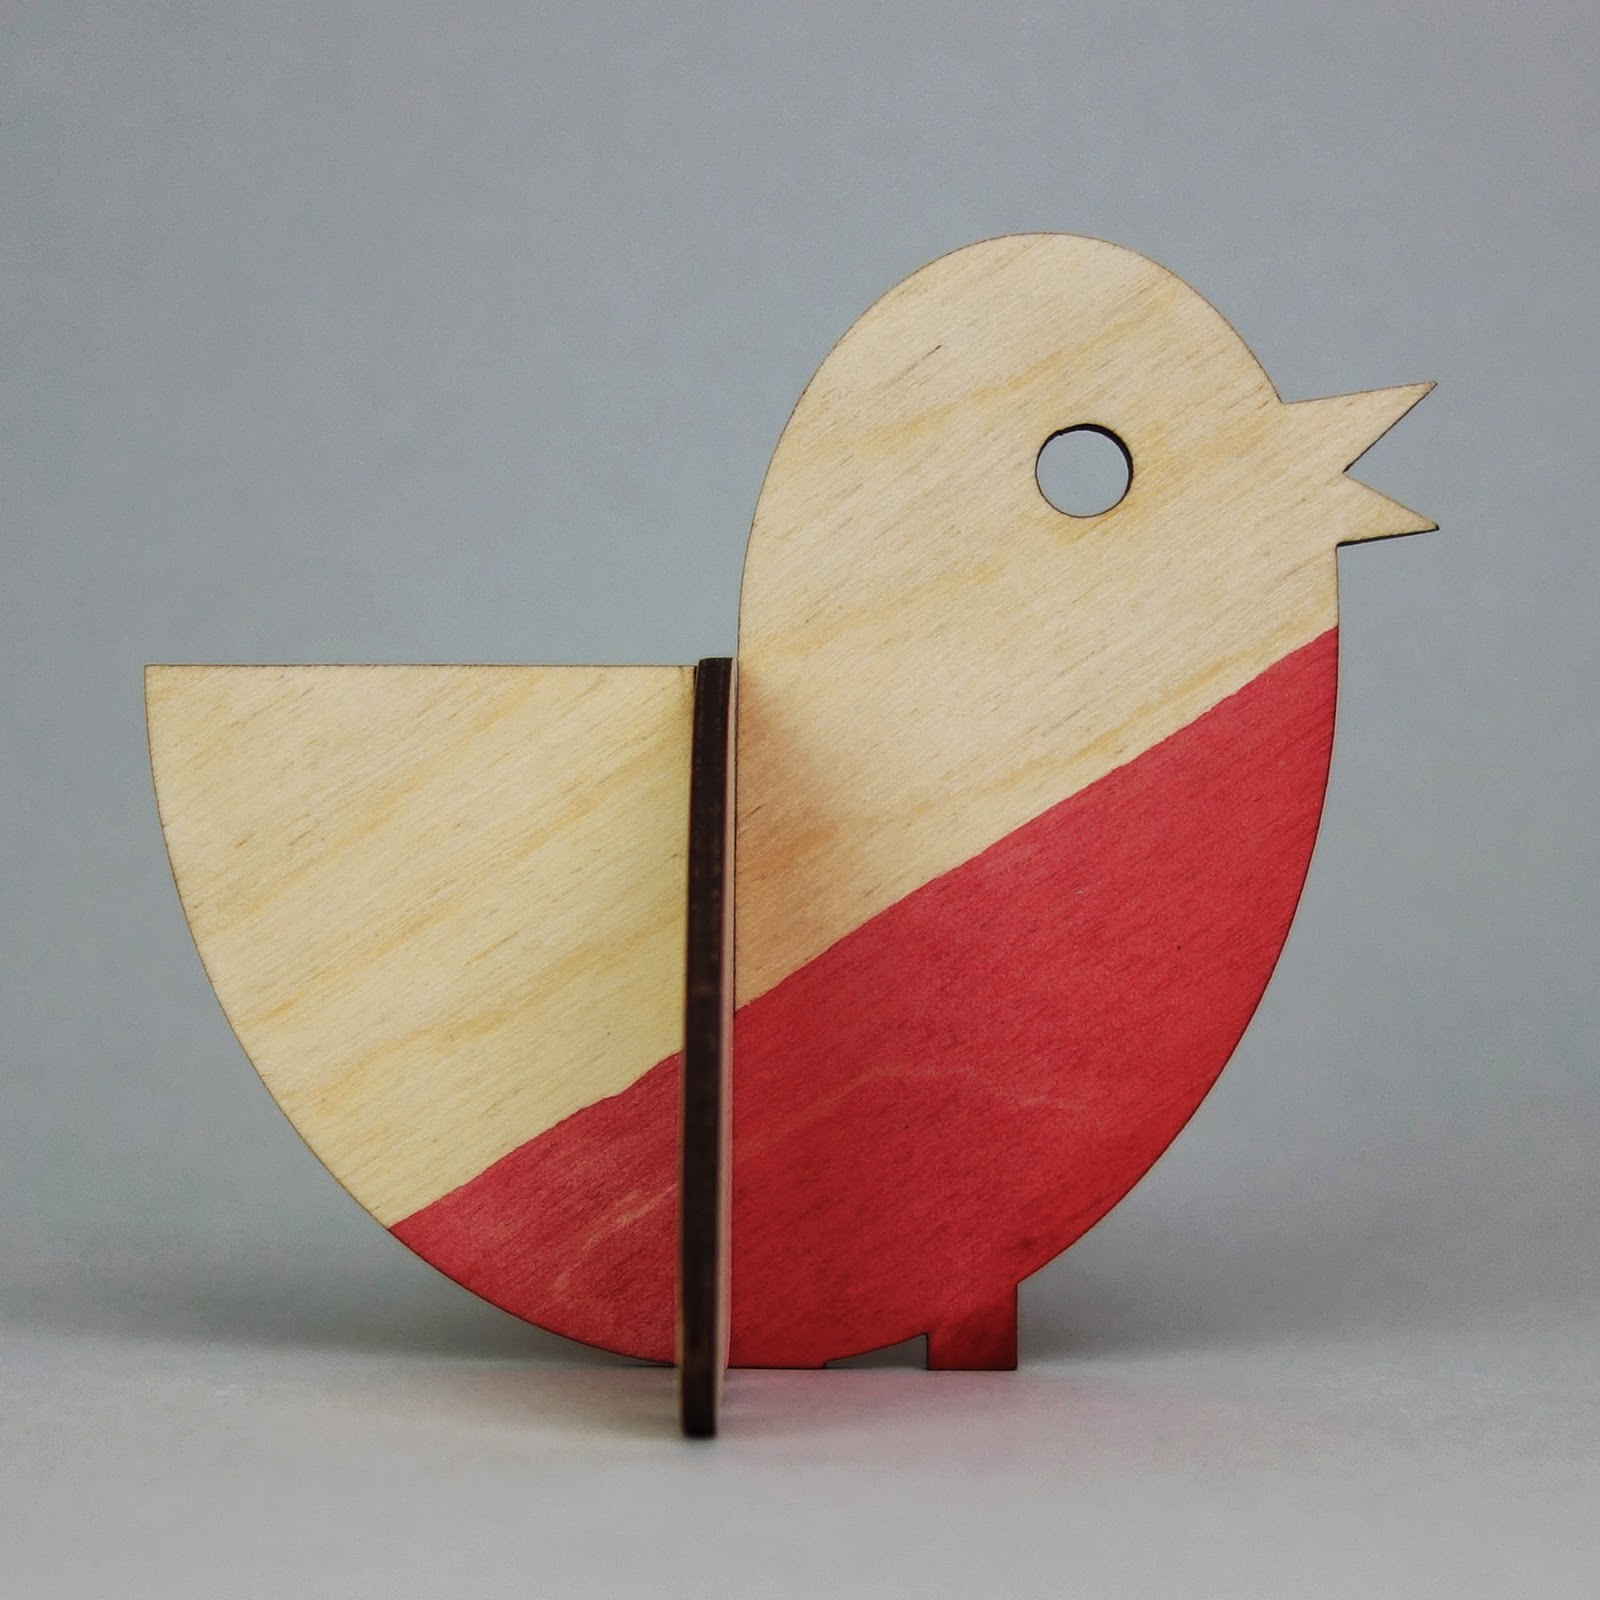 Plywood Christmas robin maquette 2014, side